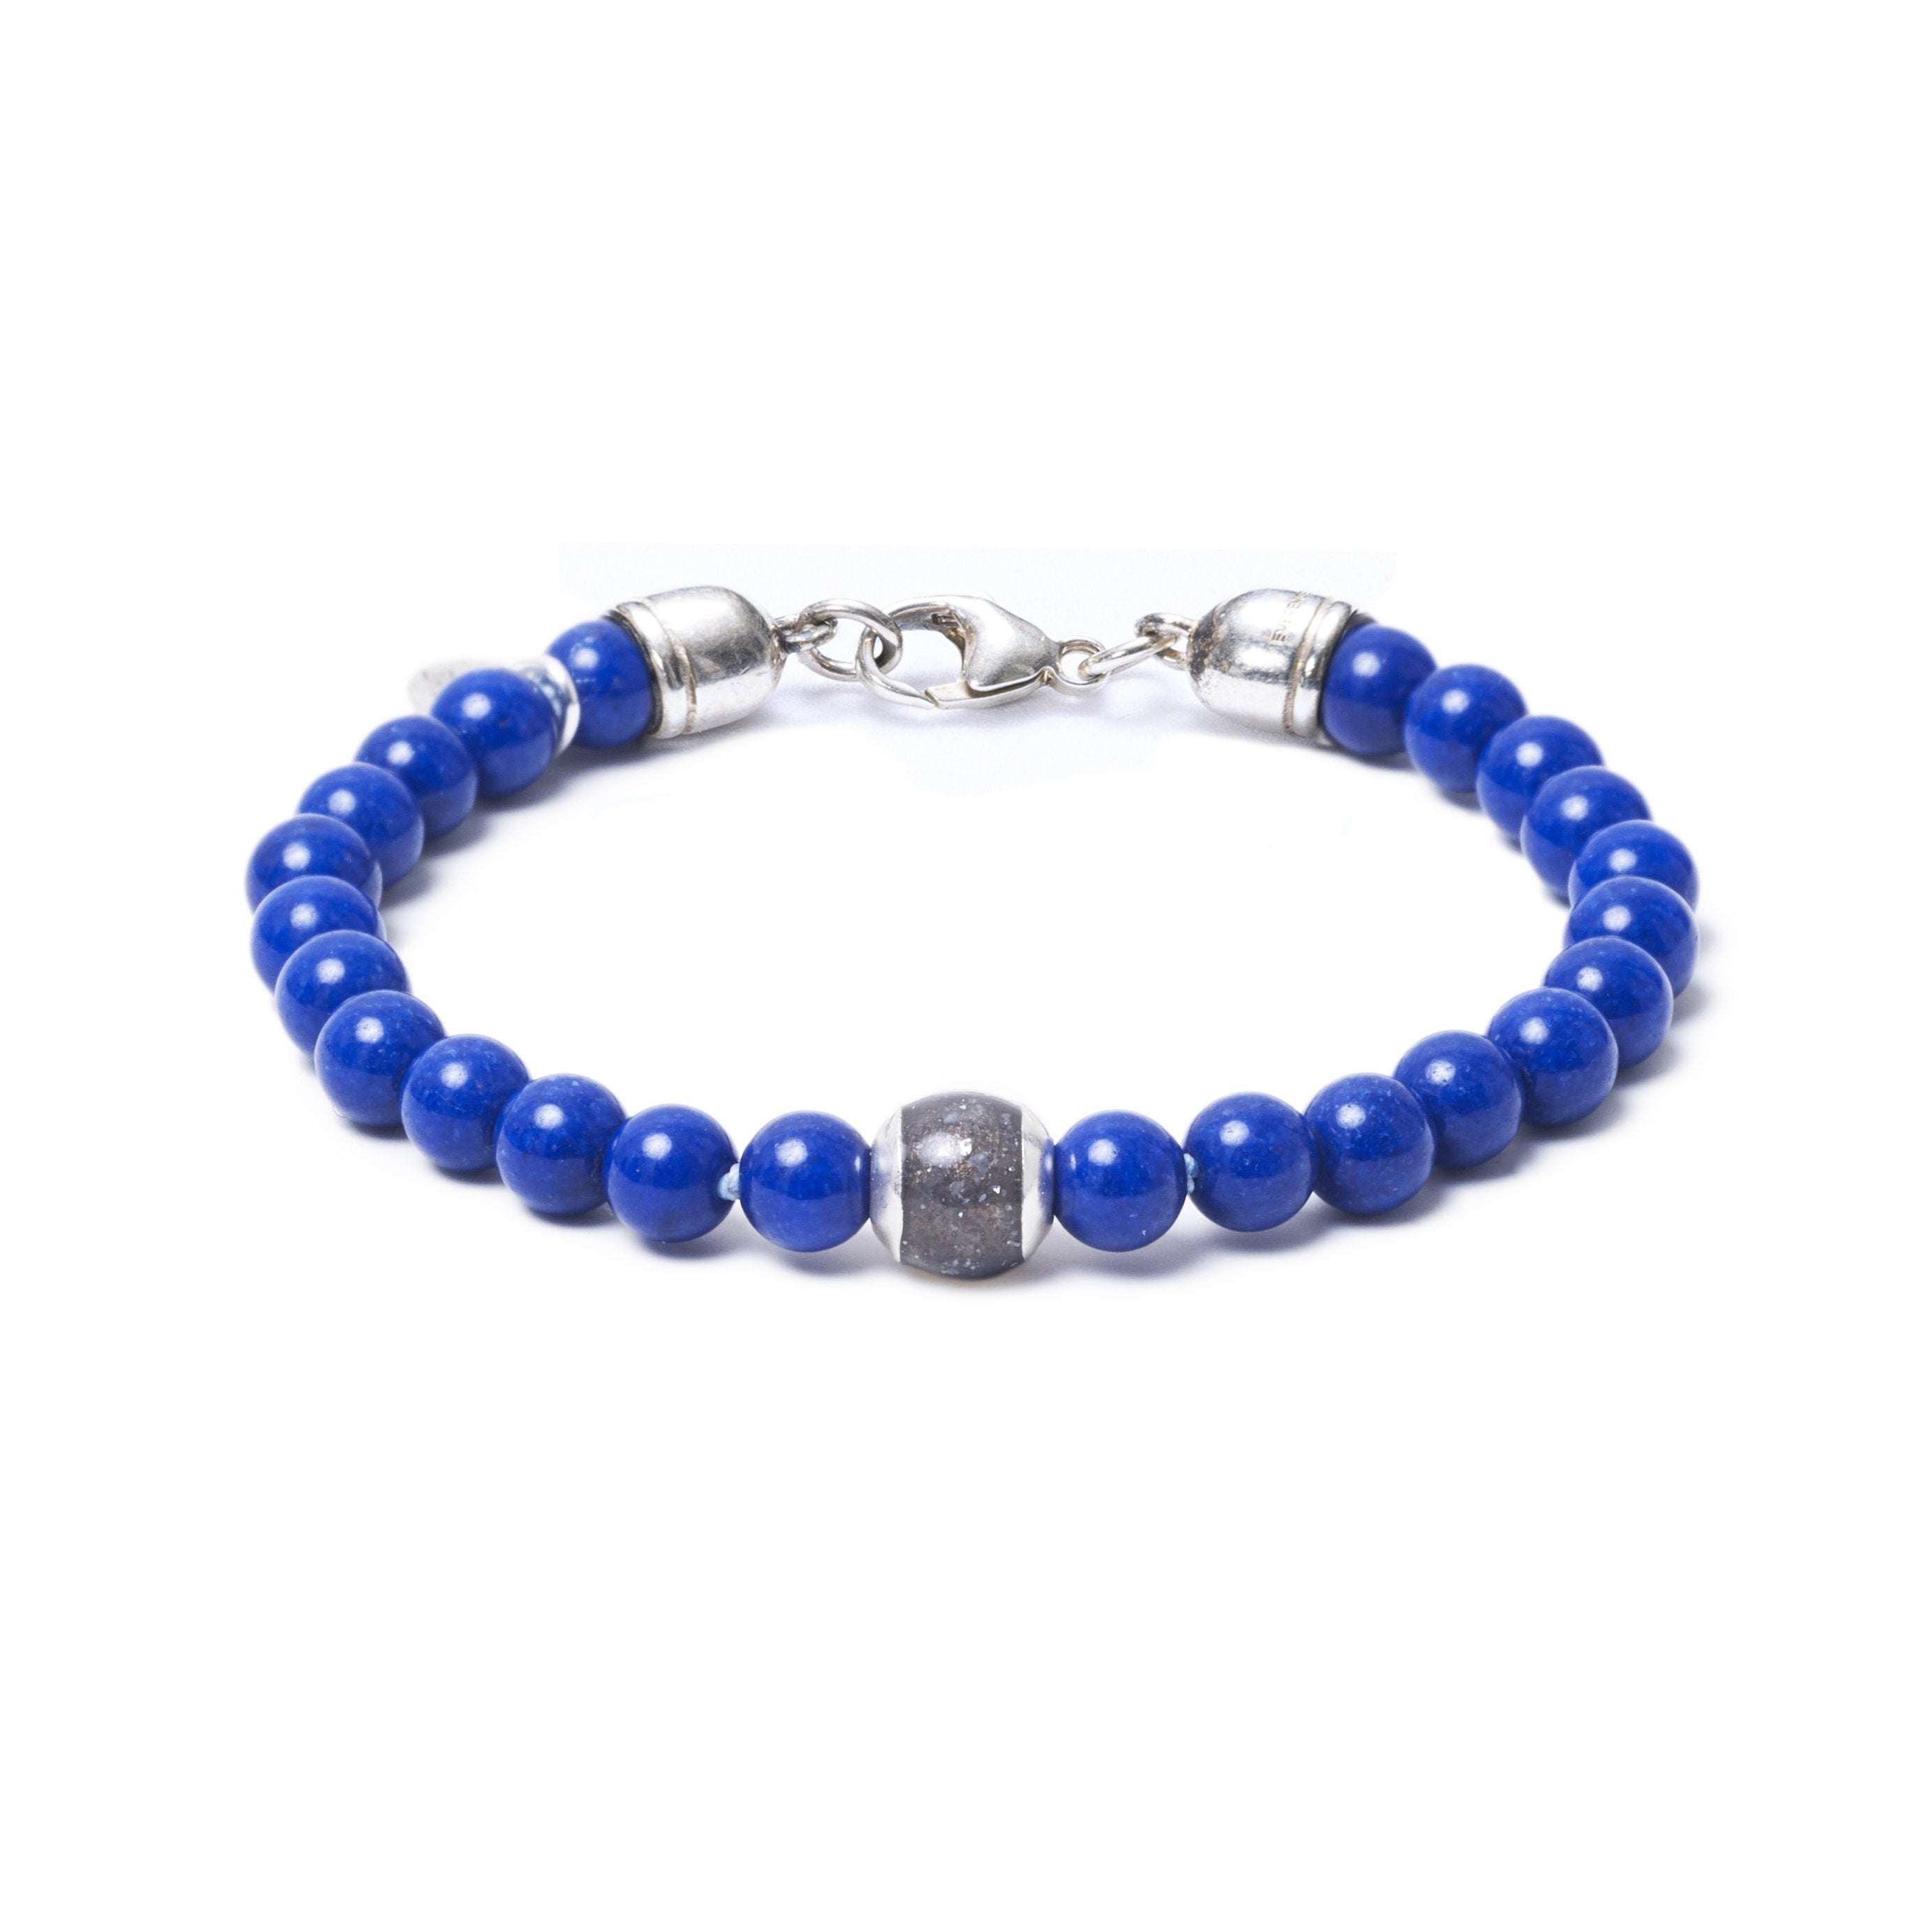 Lapis Lazuli, One Everence Bead everence.life Grey Lobster Claw 7